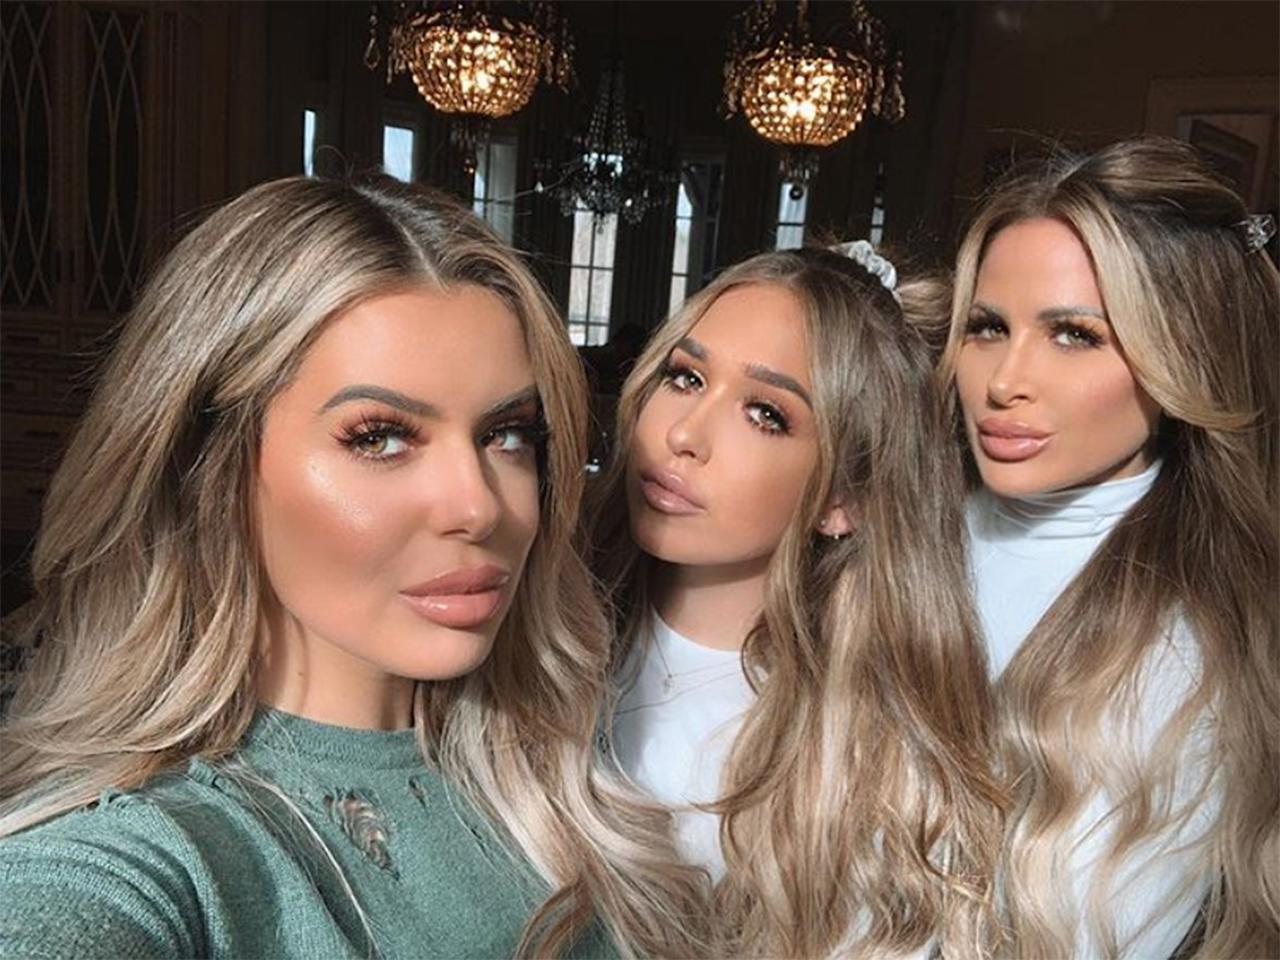 """At least, if Brielle's March 2019 Insta caption was to be believed. """"We went to the plastic surgeon and asked for the 3 for 1 special,"""" <a rel=""""nofollow"""" href=""""https://www.instagram.com/p/BvK2X9ZFy5x/"""">she wrote</a>."""